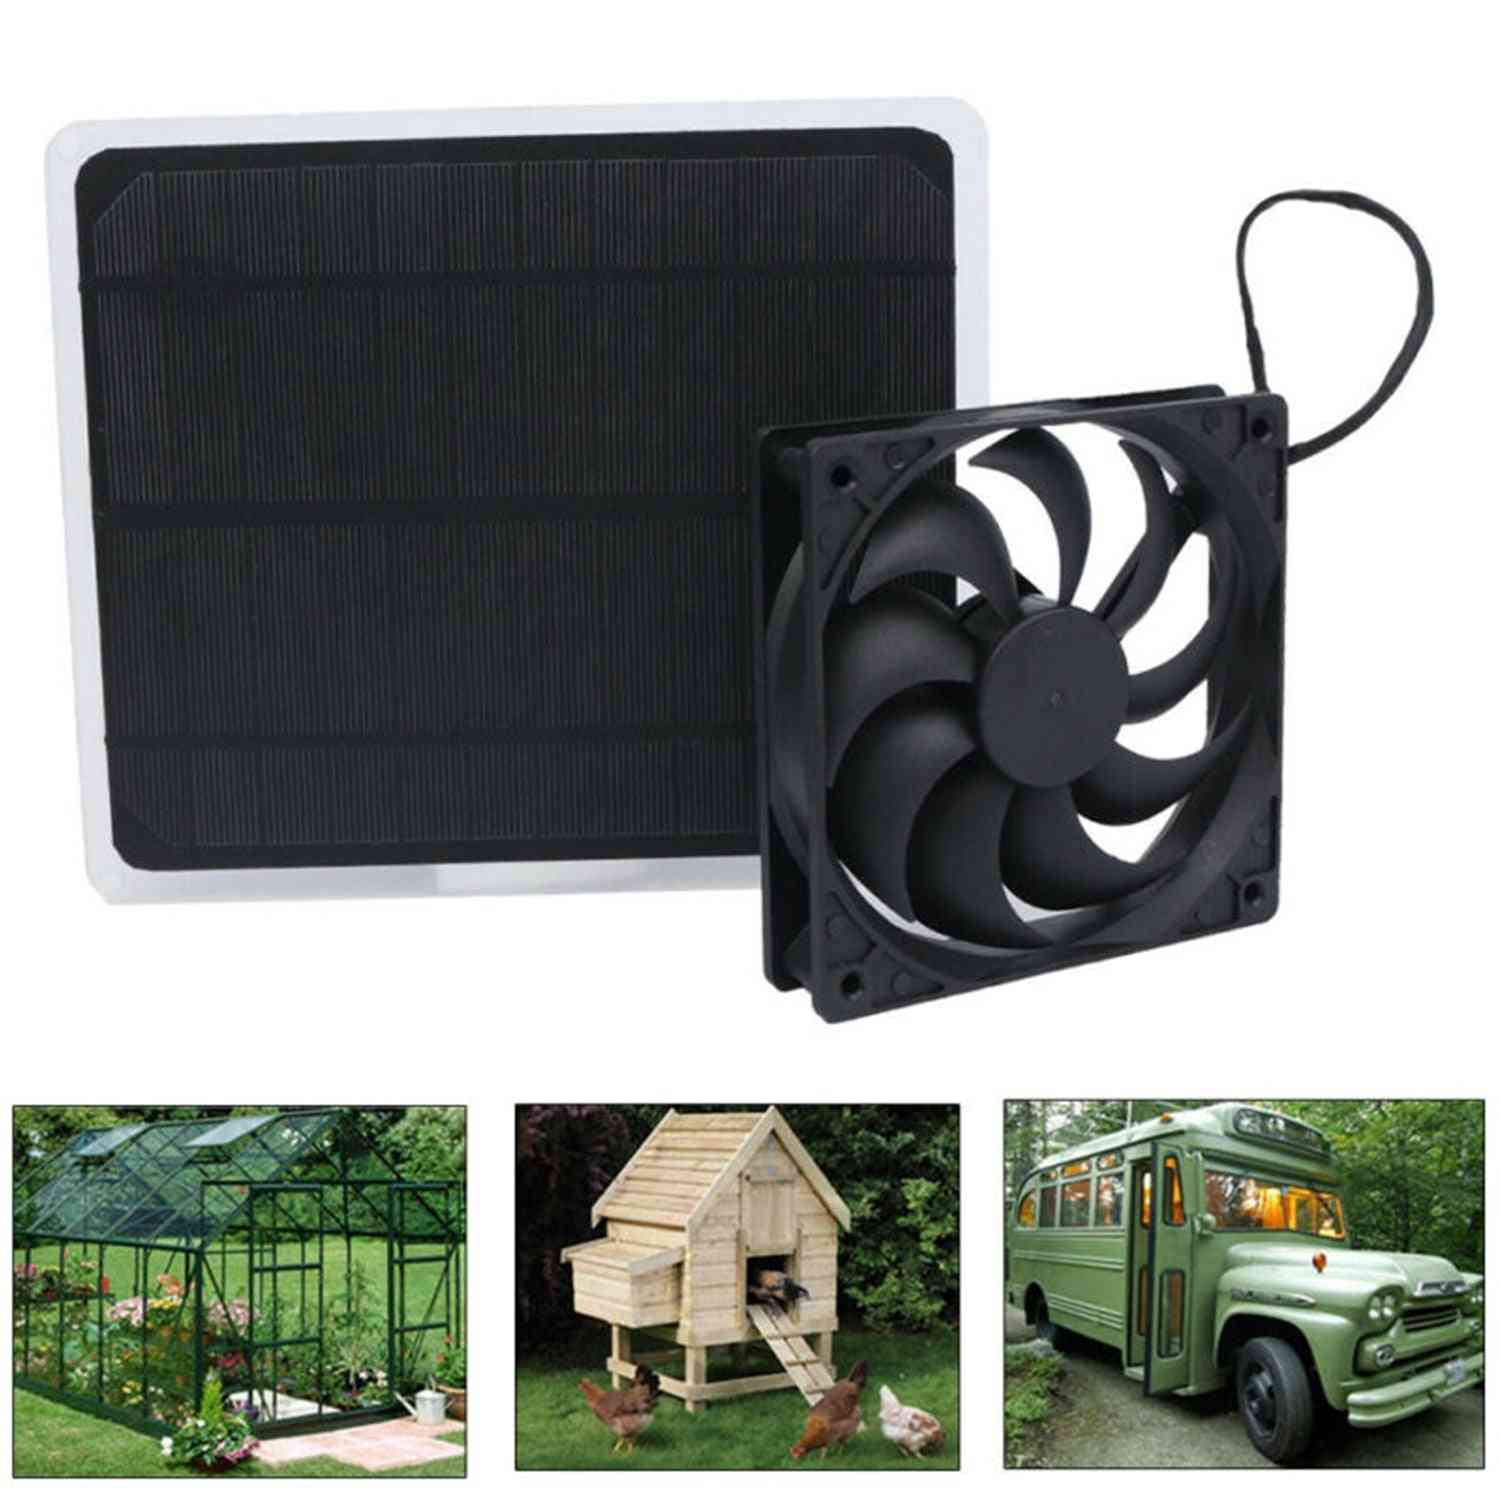 Solar Powered Panel And Fan For Home, Office, Outdoor, Traveling